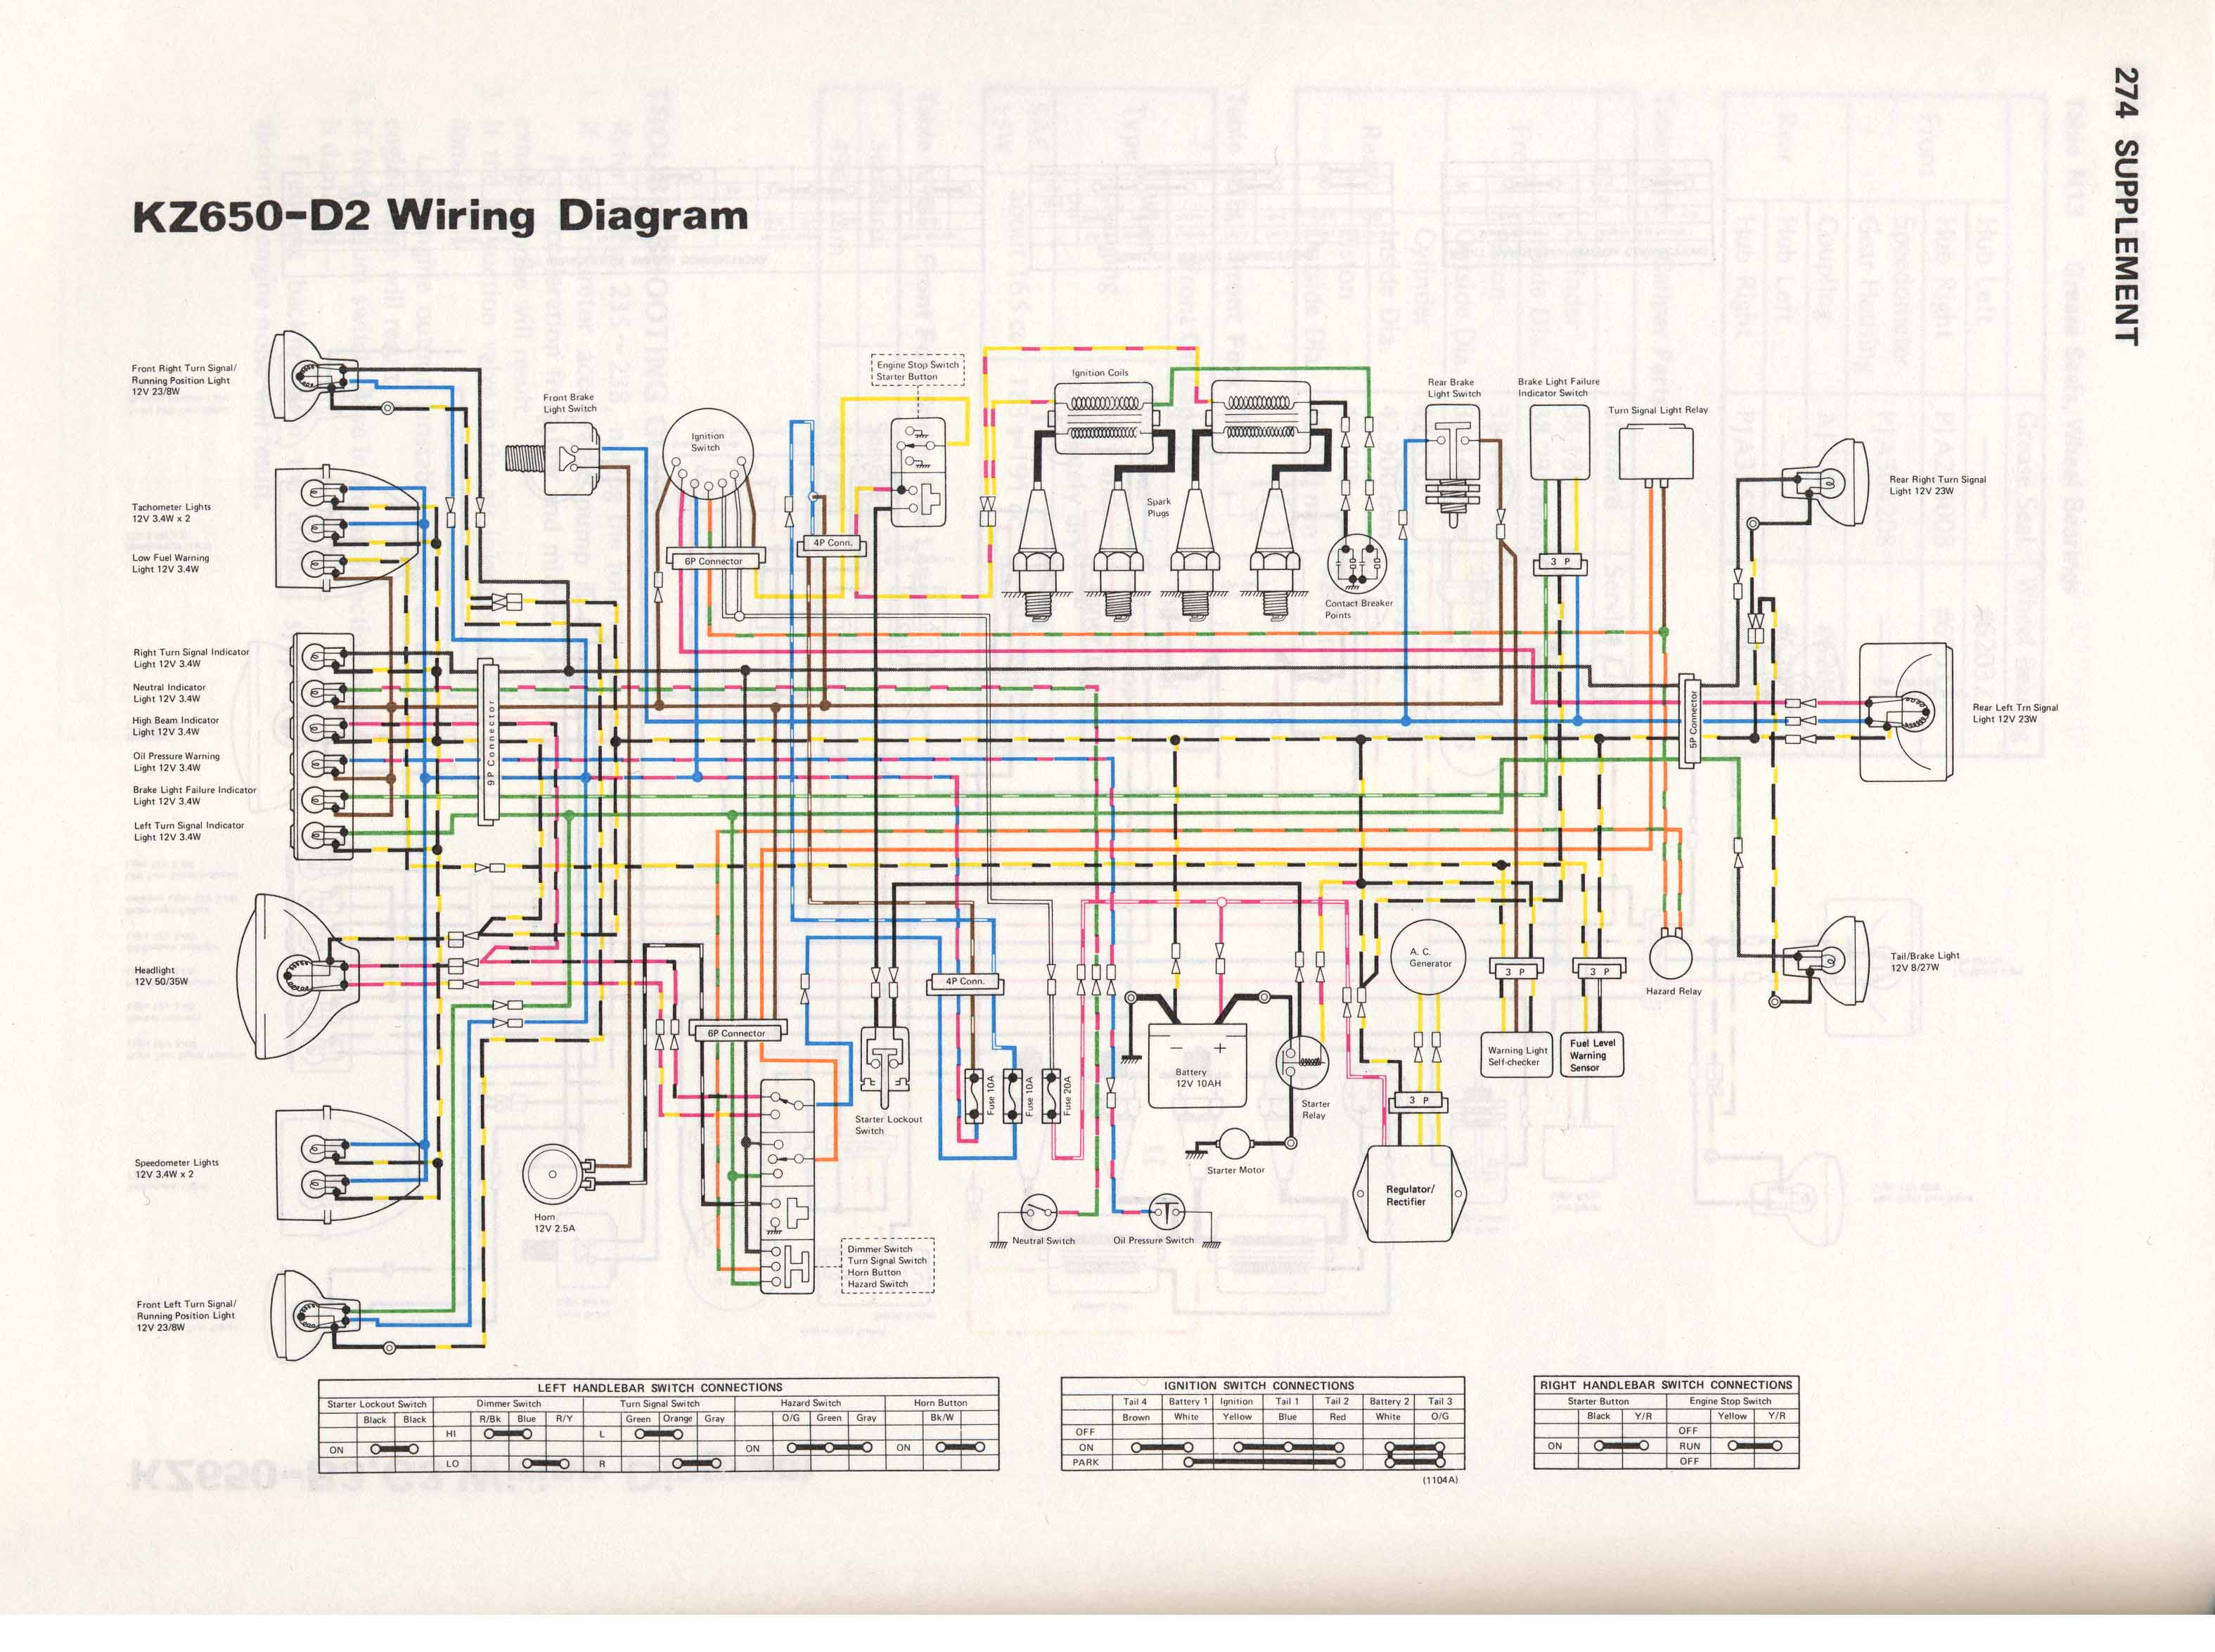 KZ650 D2 kz650 info wiring diagrams Yamaha Wiring Schematic at bayanpartner.co